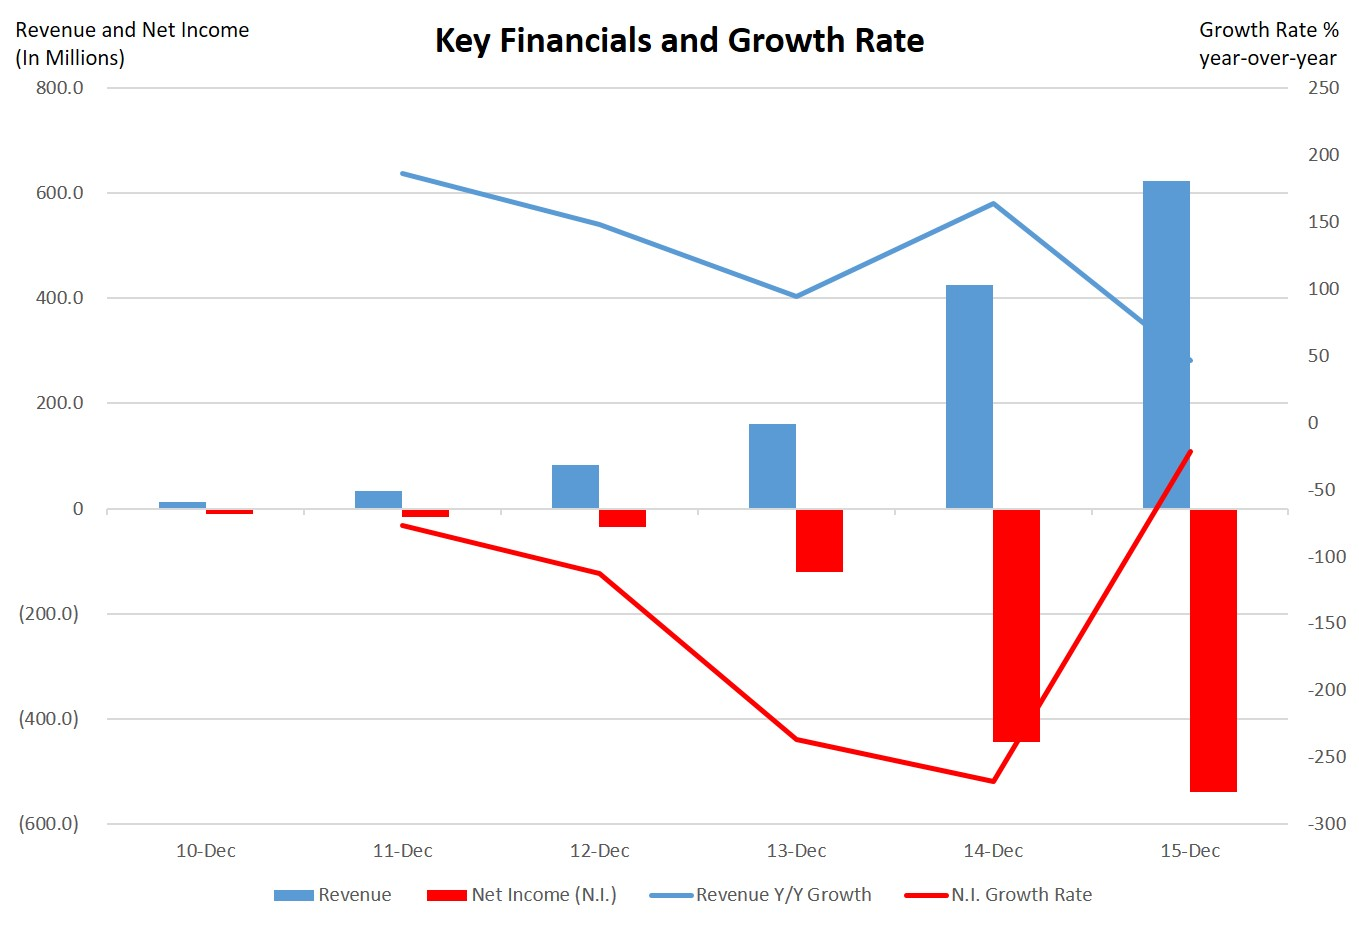 FireEye's Key Financials and Growth Rate